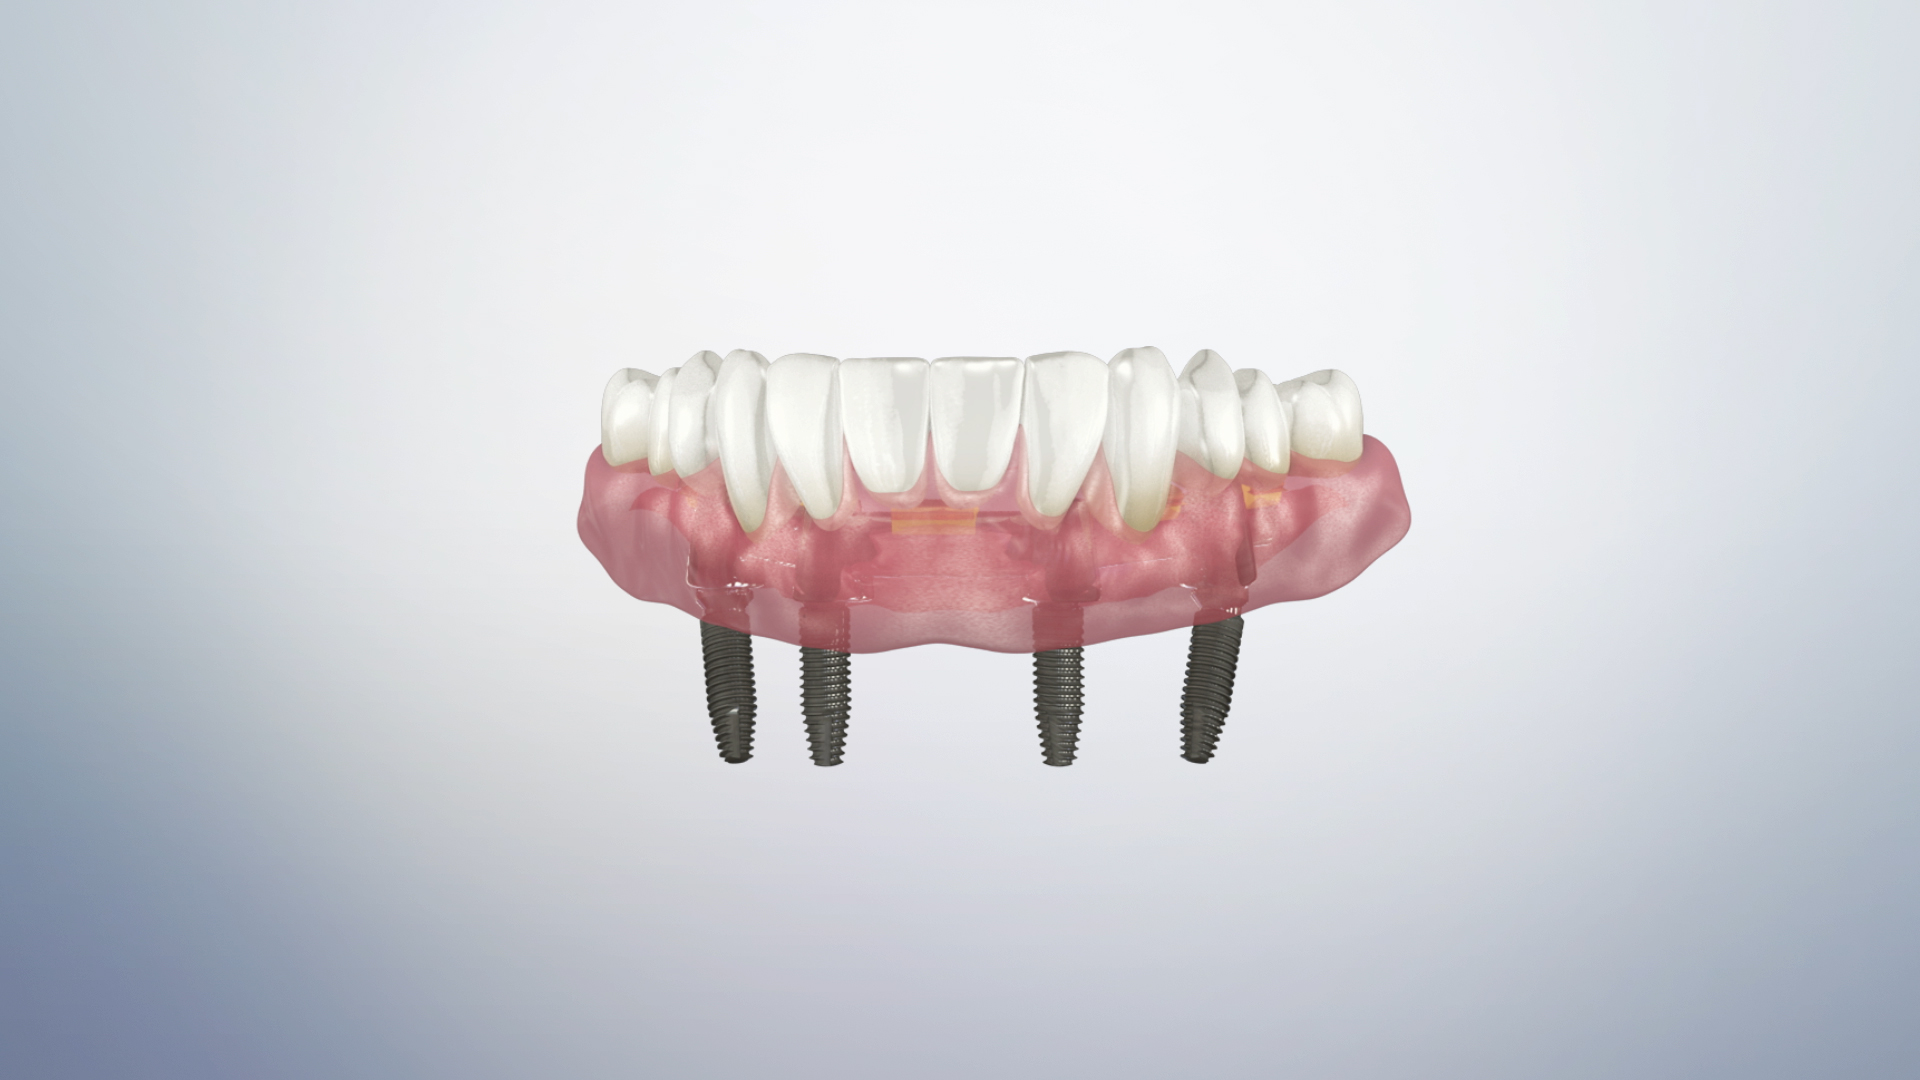 Thumbnail for a video on Bar Retained Overdenture